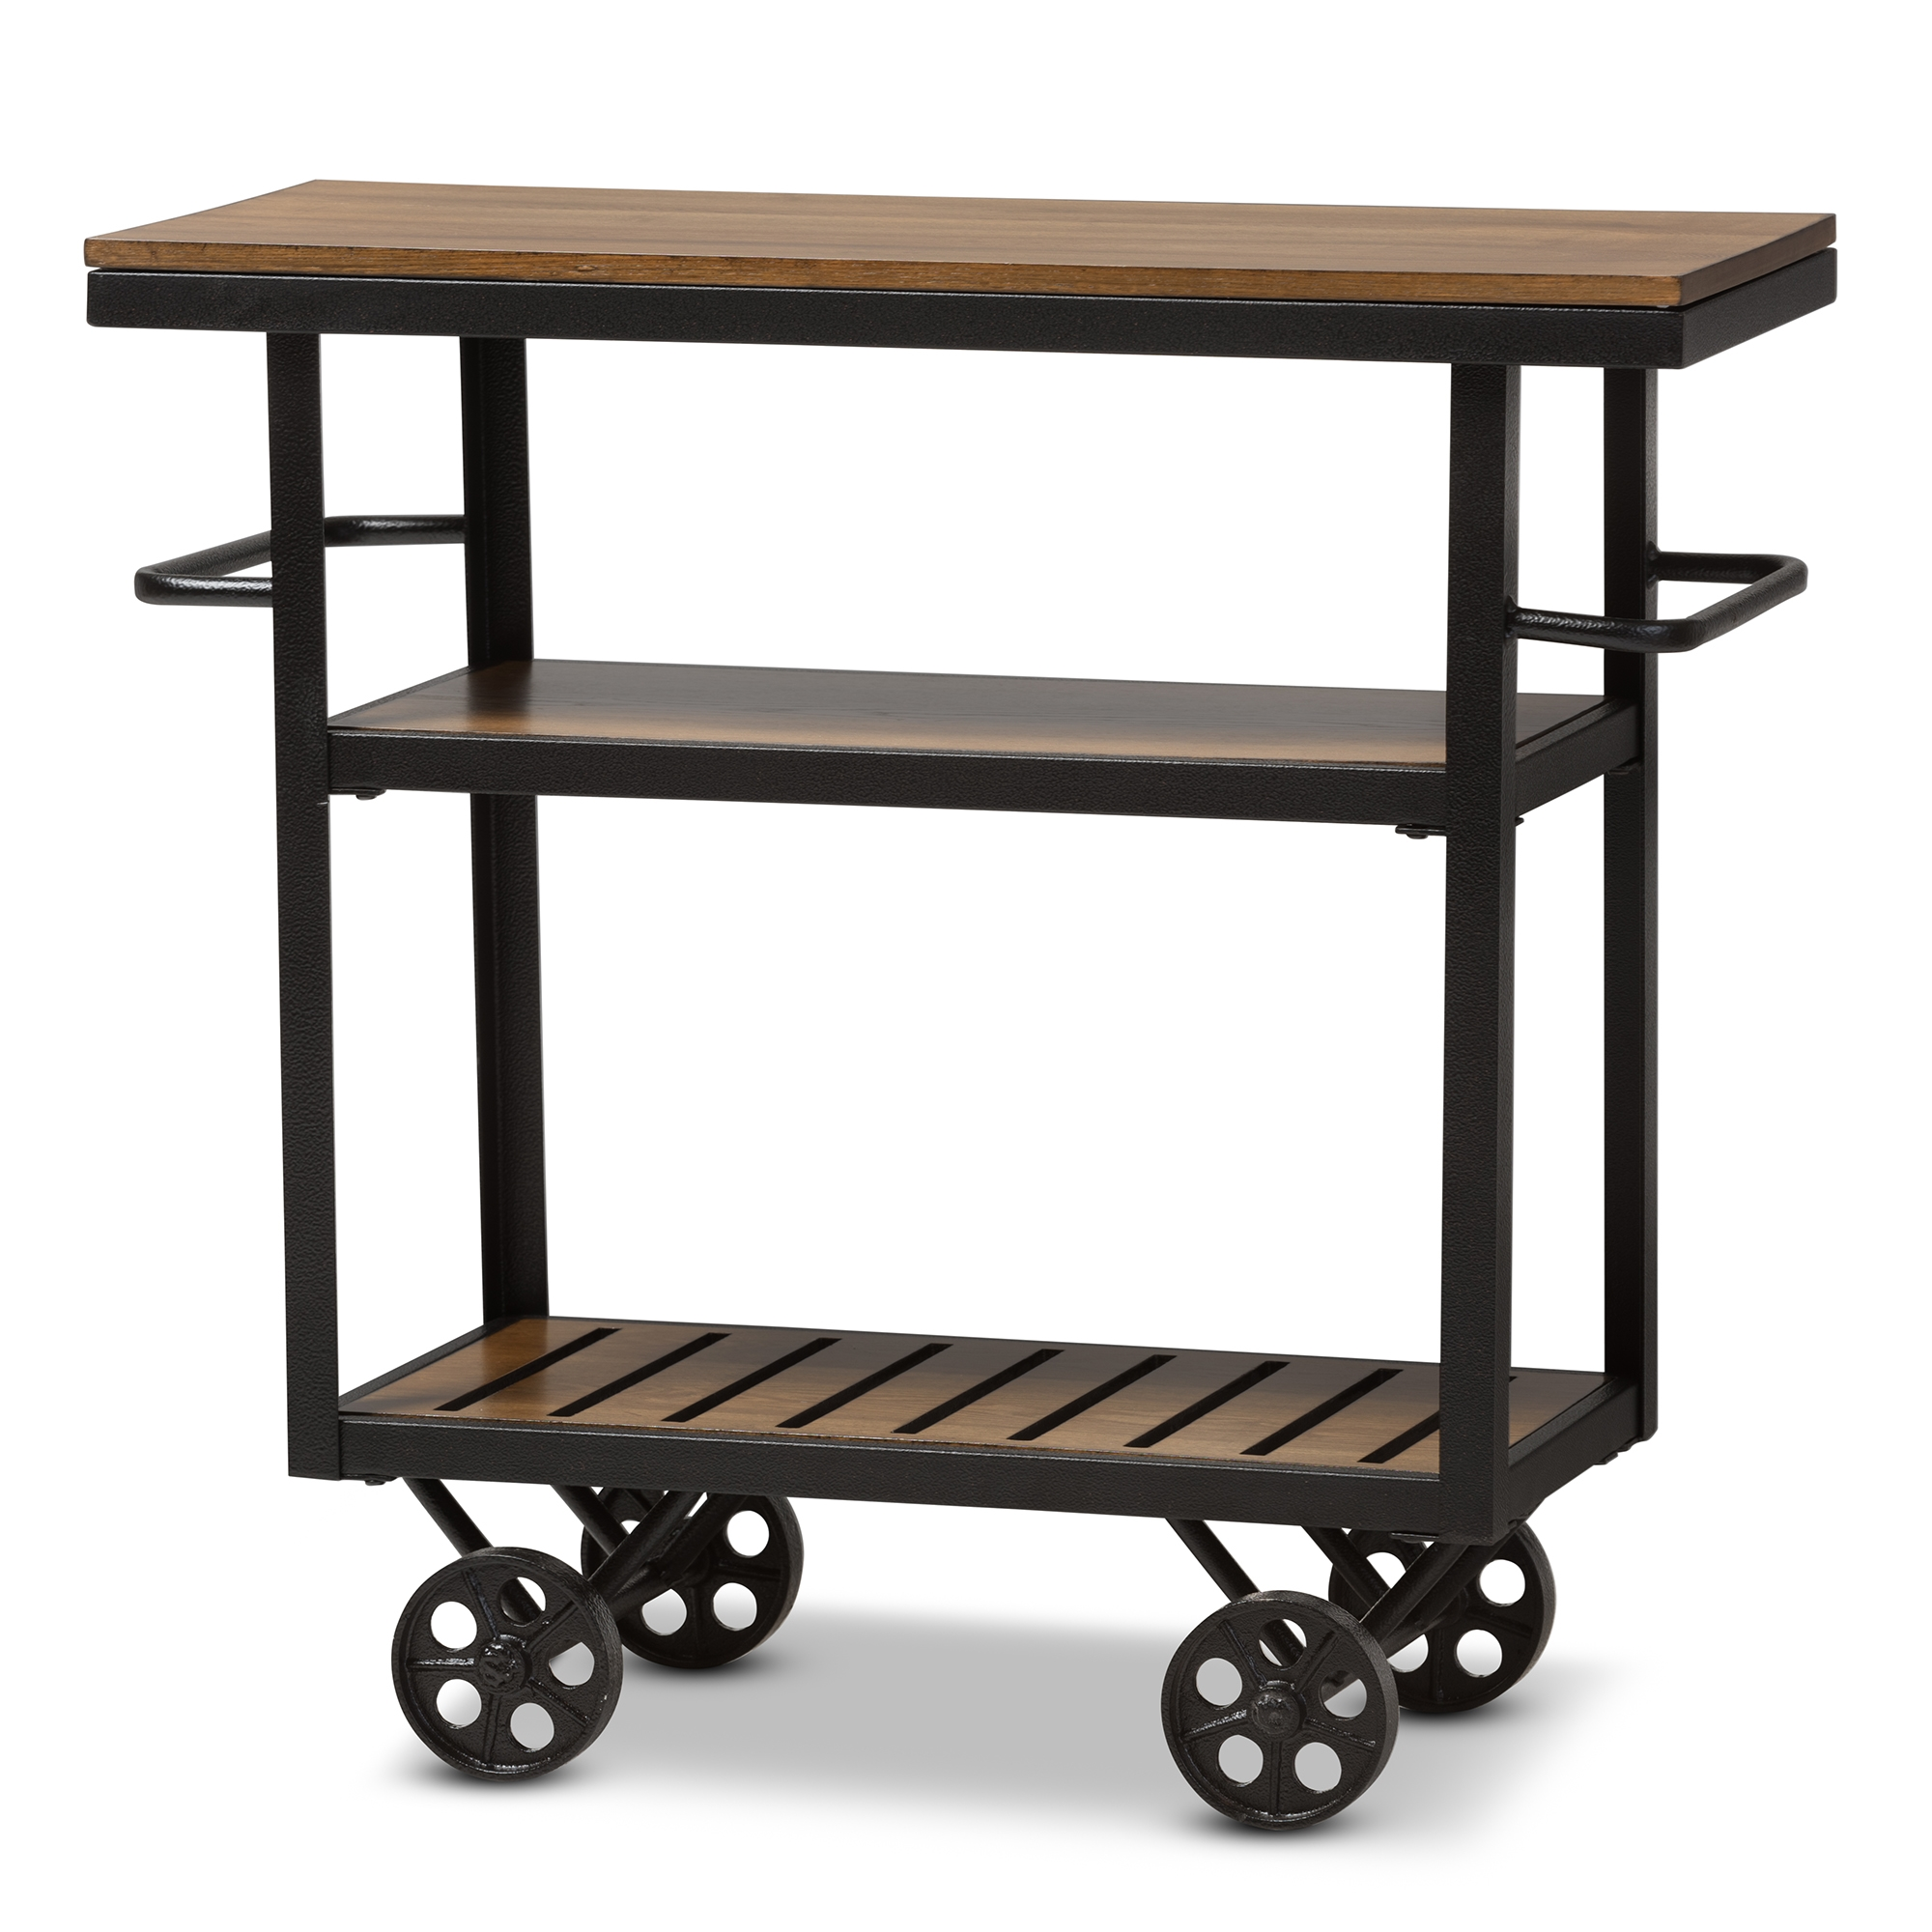 Wood And Metal Industrial Kitchen Cart: Baxton Studio Kennedy Rustic Industrial Style Antique